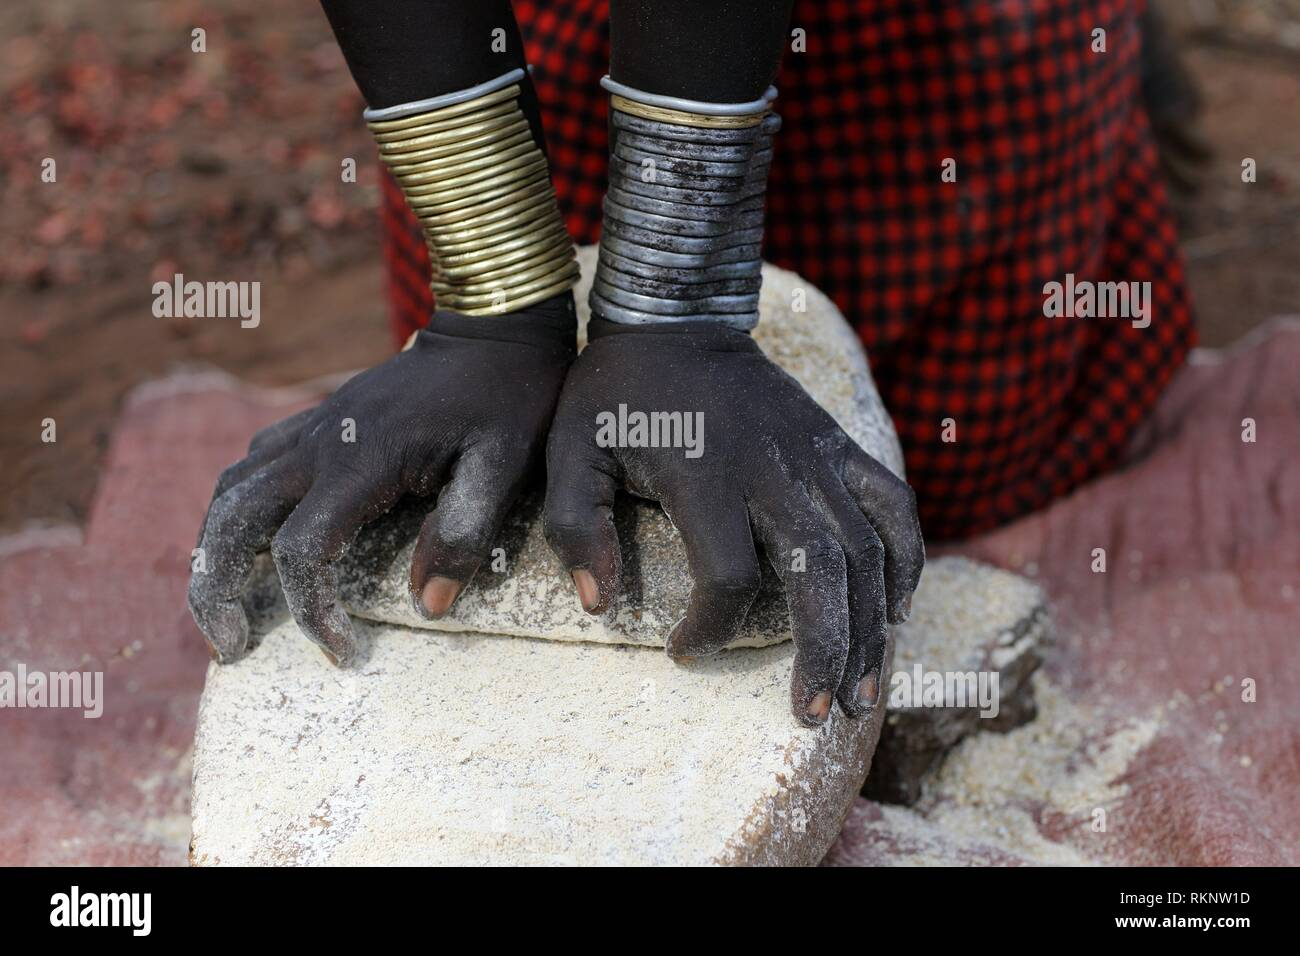 Close-up of Mursi woman kneeing down and making flour the traditional way with stone, Ethiopia, East Africa. - Stock Image